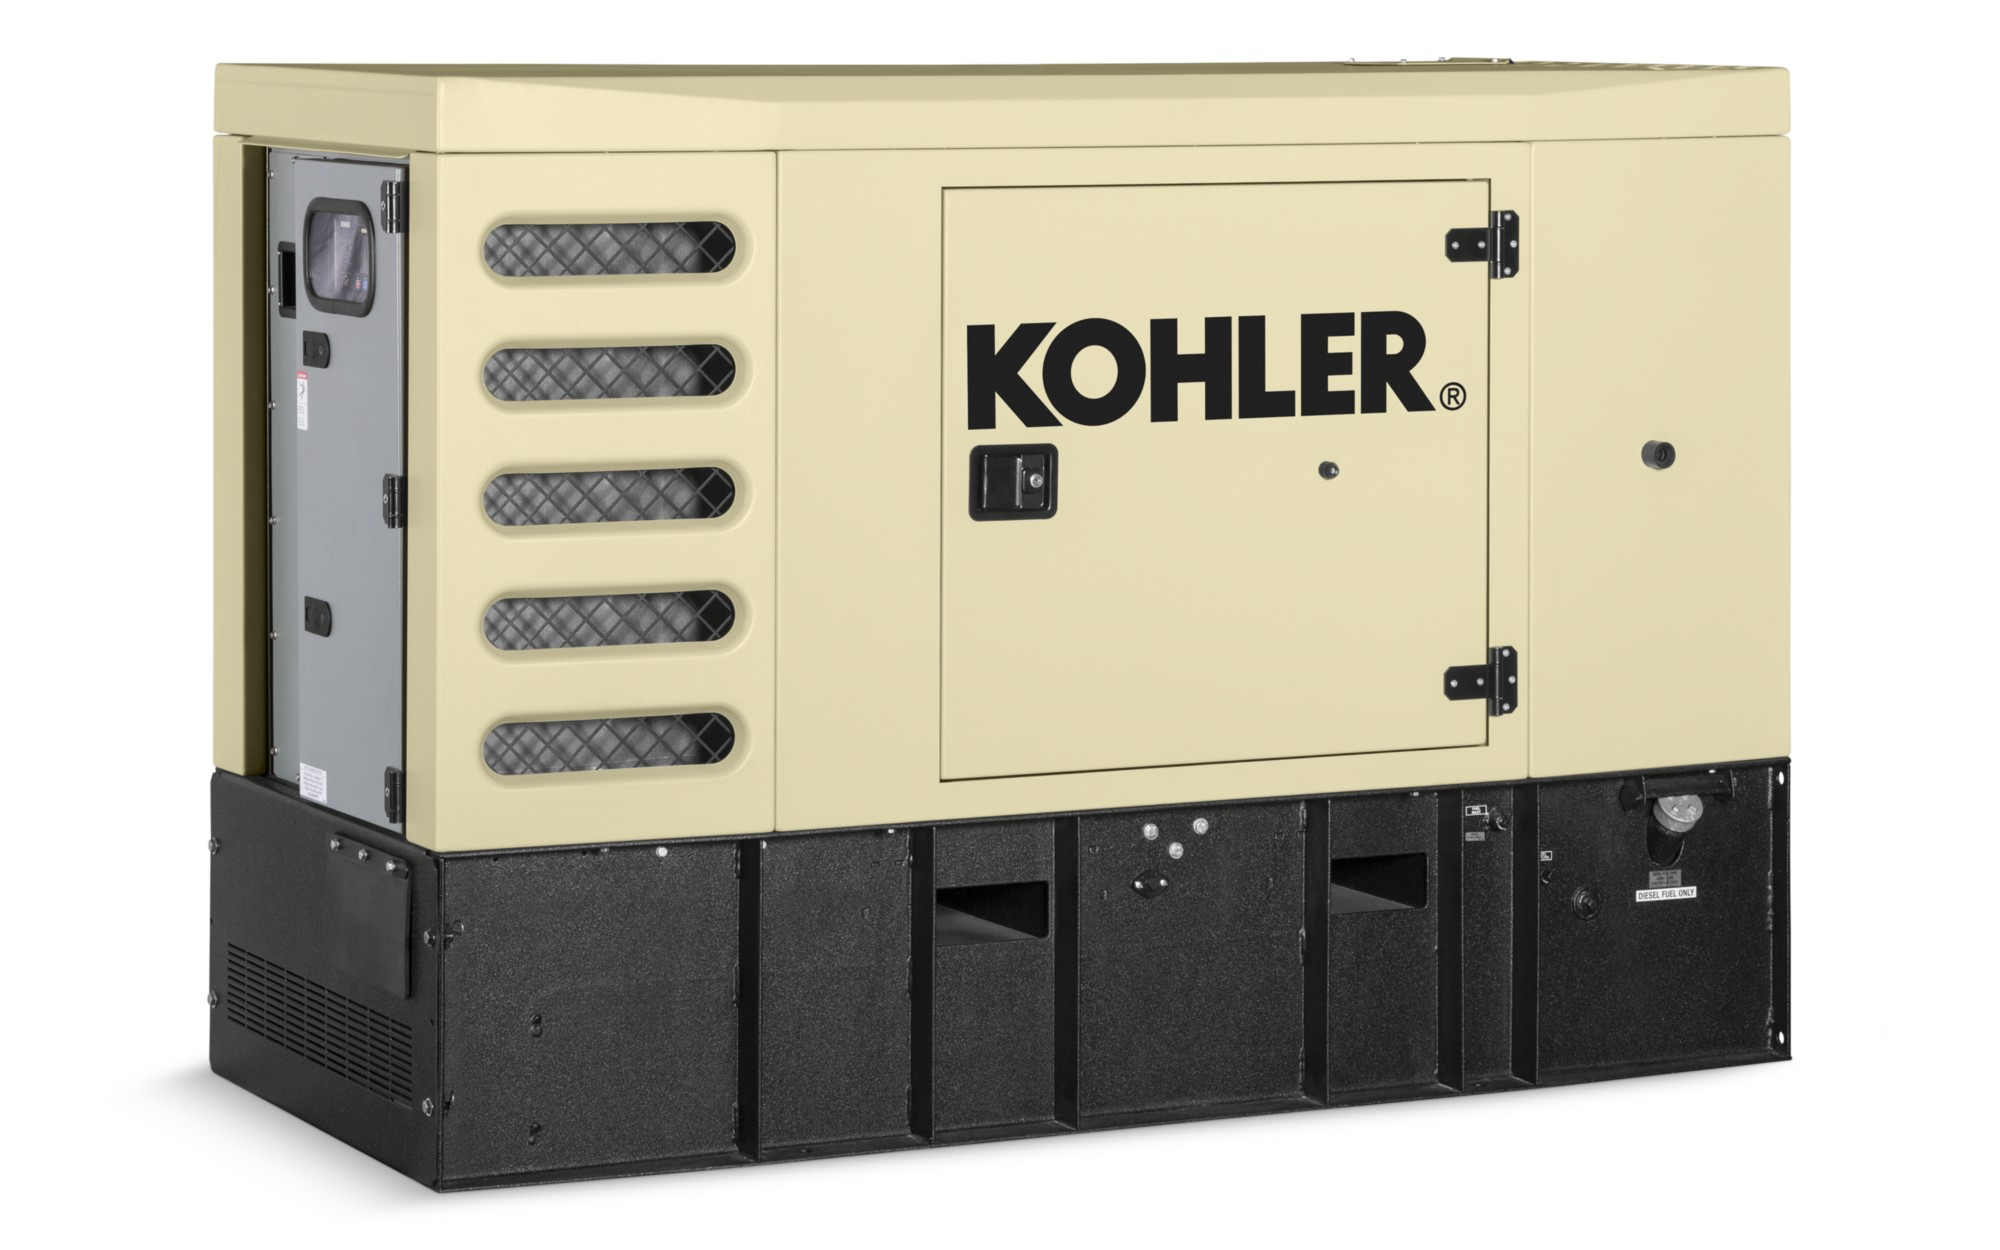 South Shore Generator - KOLHER Diesel Generators